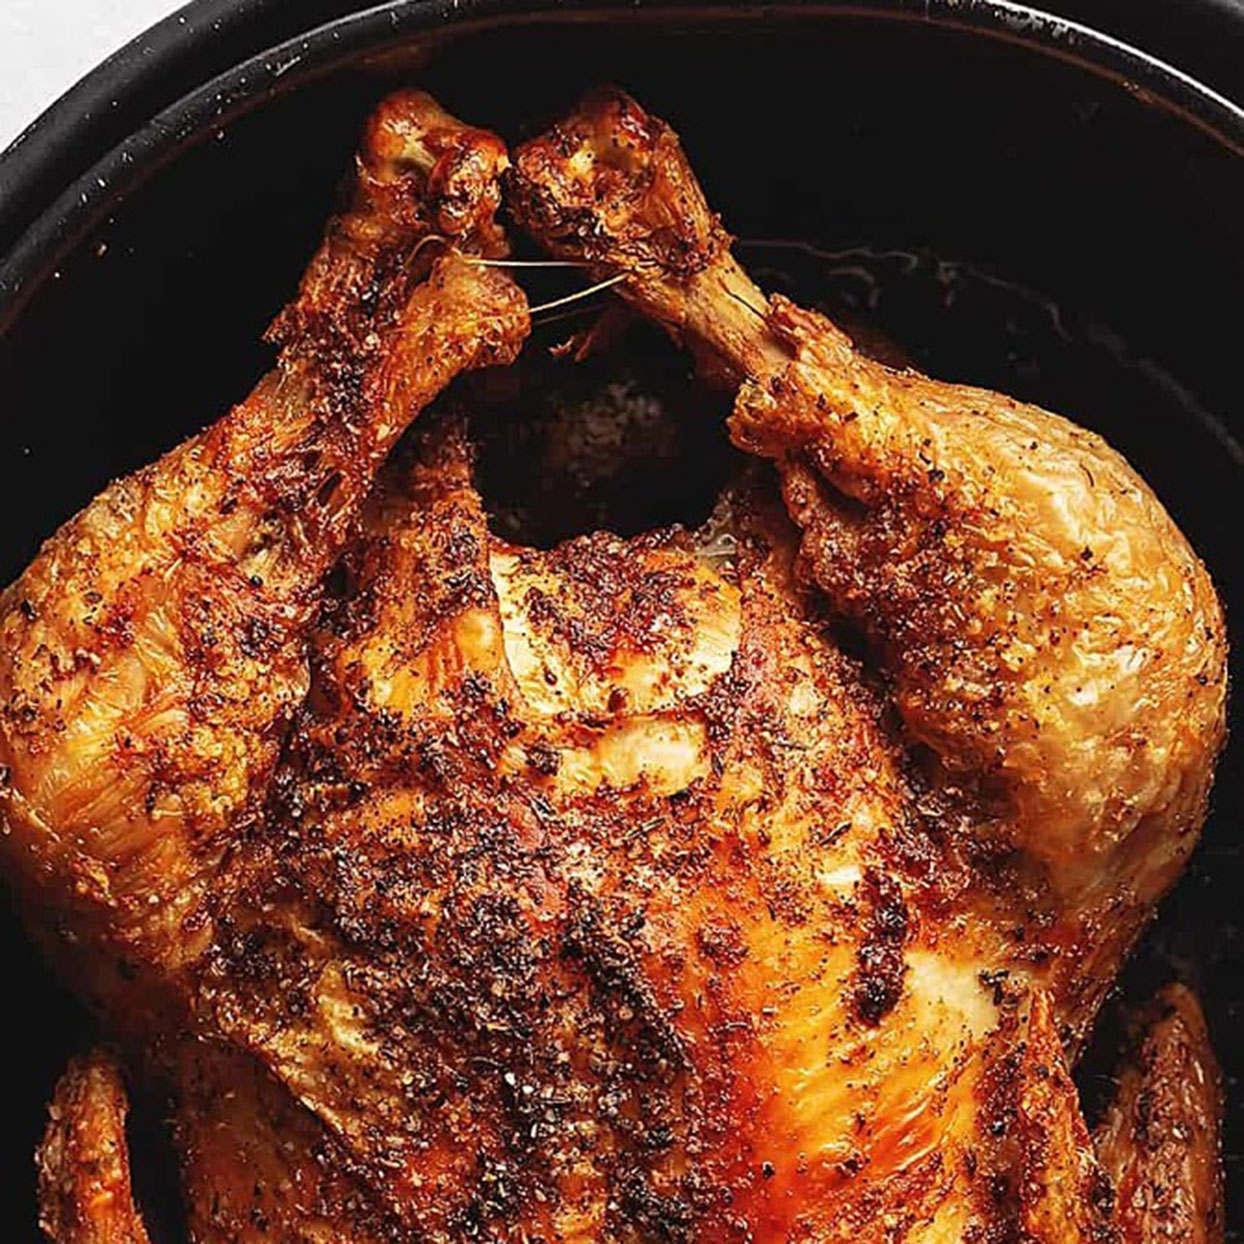 Yes, you could run to the grocery store and pick up a rotisserie chicken on your way home from work. But the air fryer can also get the job done with juicy meat and crispy skin. Eat with all the fixins or toss some chicken into soup, stir fry, and casserole as needed. (See also: 10 Rotisserie Chicken Dinners You Can Make in 30 Minutes or Less.)